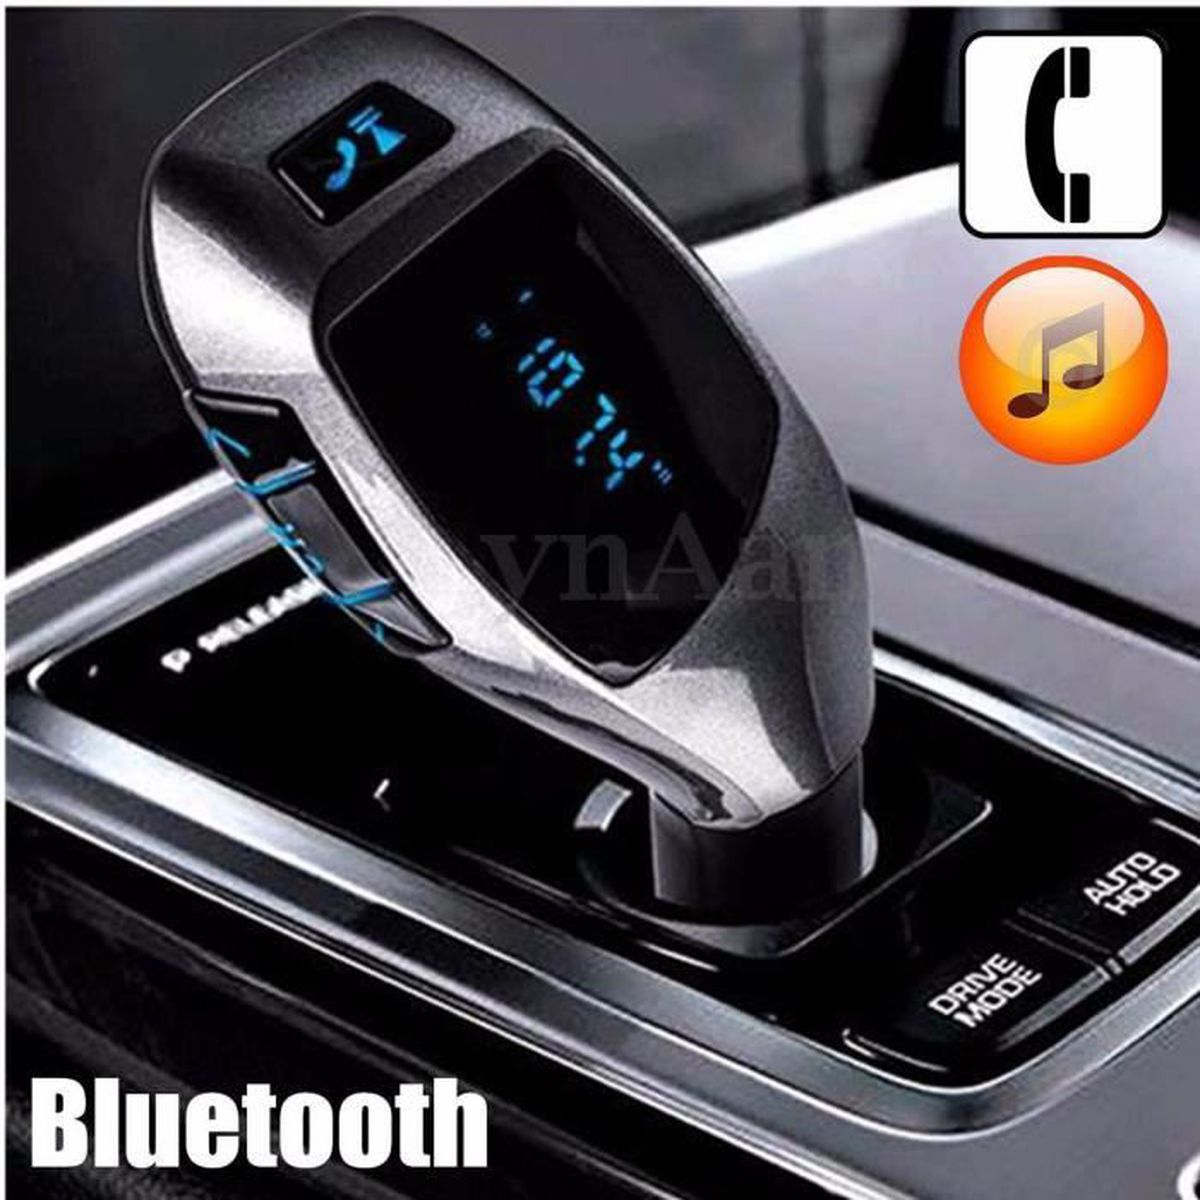 transmetteur fm bluetooth mains libres voiture chargeur smartphone kaeesi achat vente kit. Black Bedroom Furniture Sets. Home Design Ideas